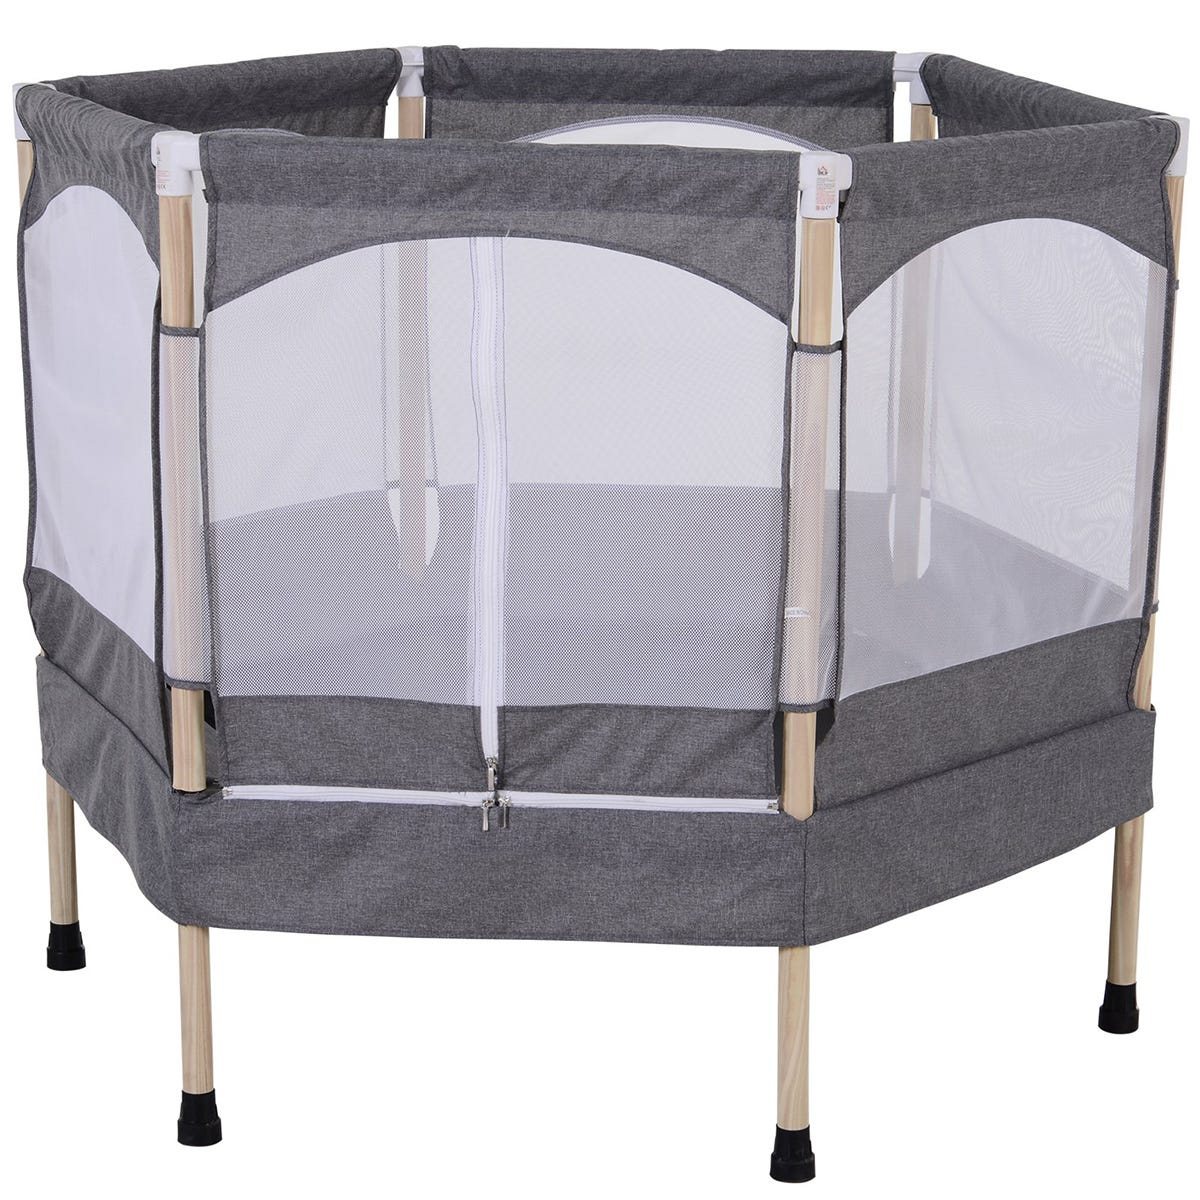 Jouet 3ft Kids Trampoline Outdoor Bounce Hexagon with Safety Enclosure Net & Spring Pad - Grey